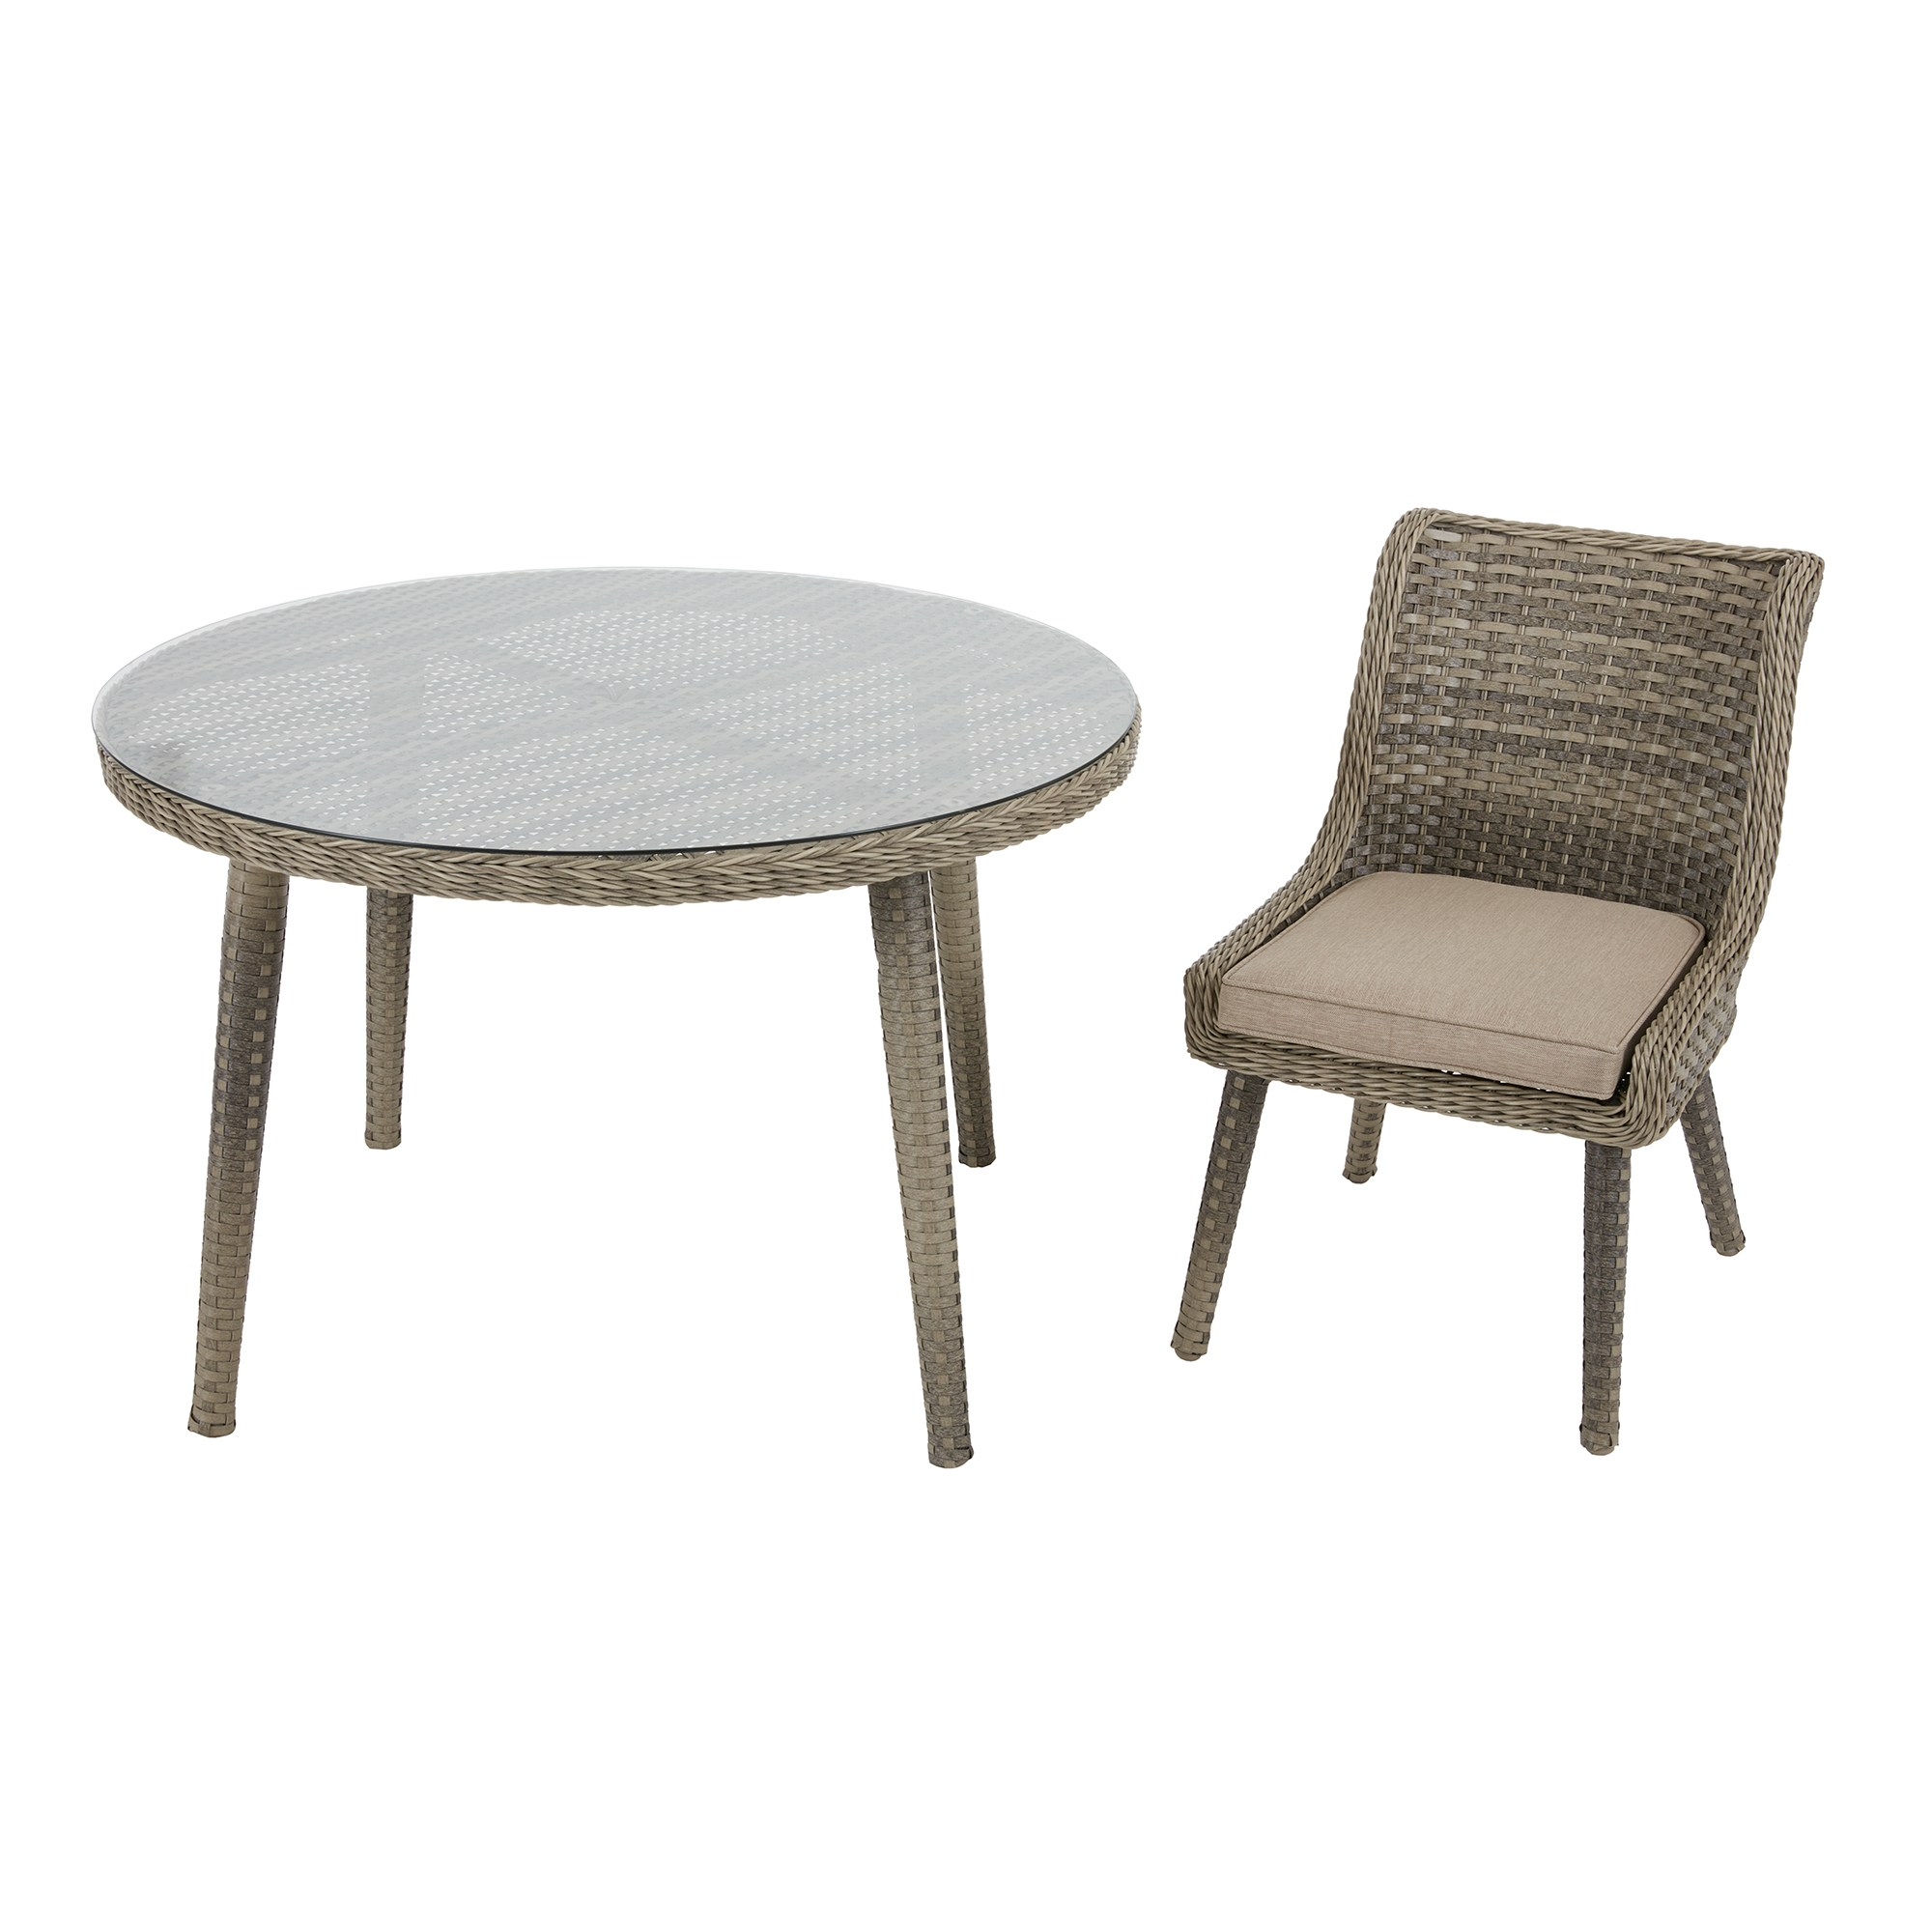 madison park dana grey sand outdoor side chair set table and chairs free shipping today small gray pier one wall art bistro mosaic runner quilt kits round oak coffee pottery barn